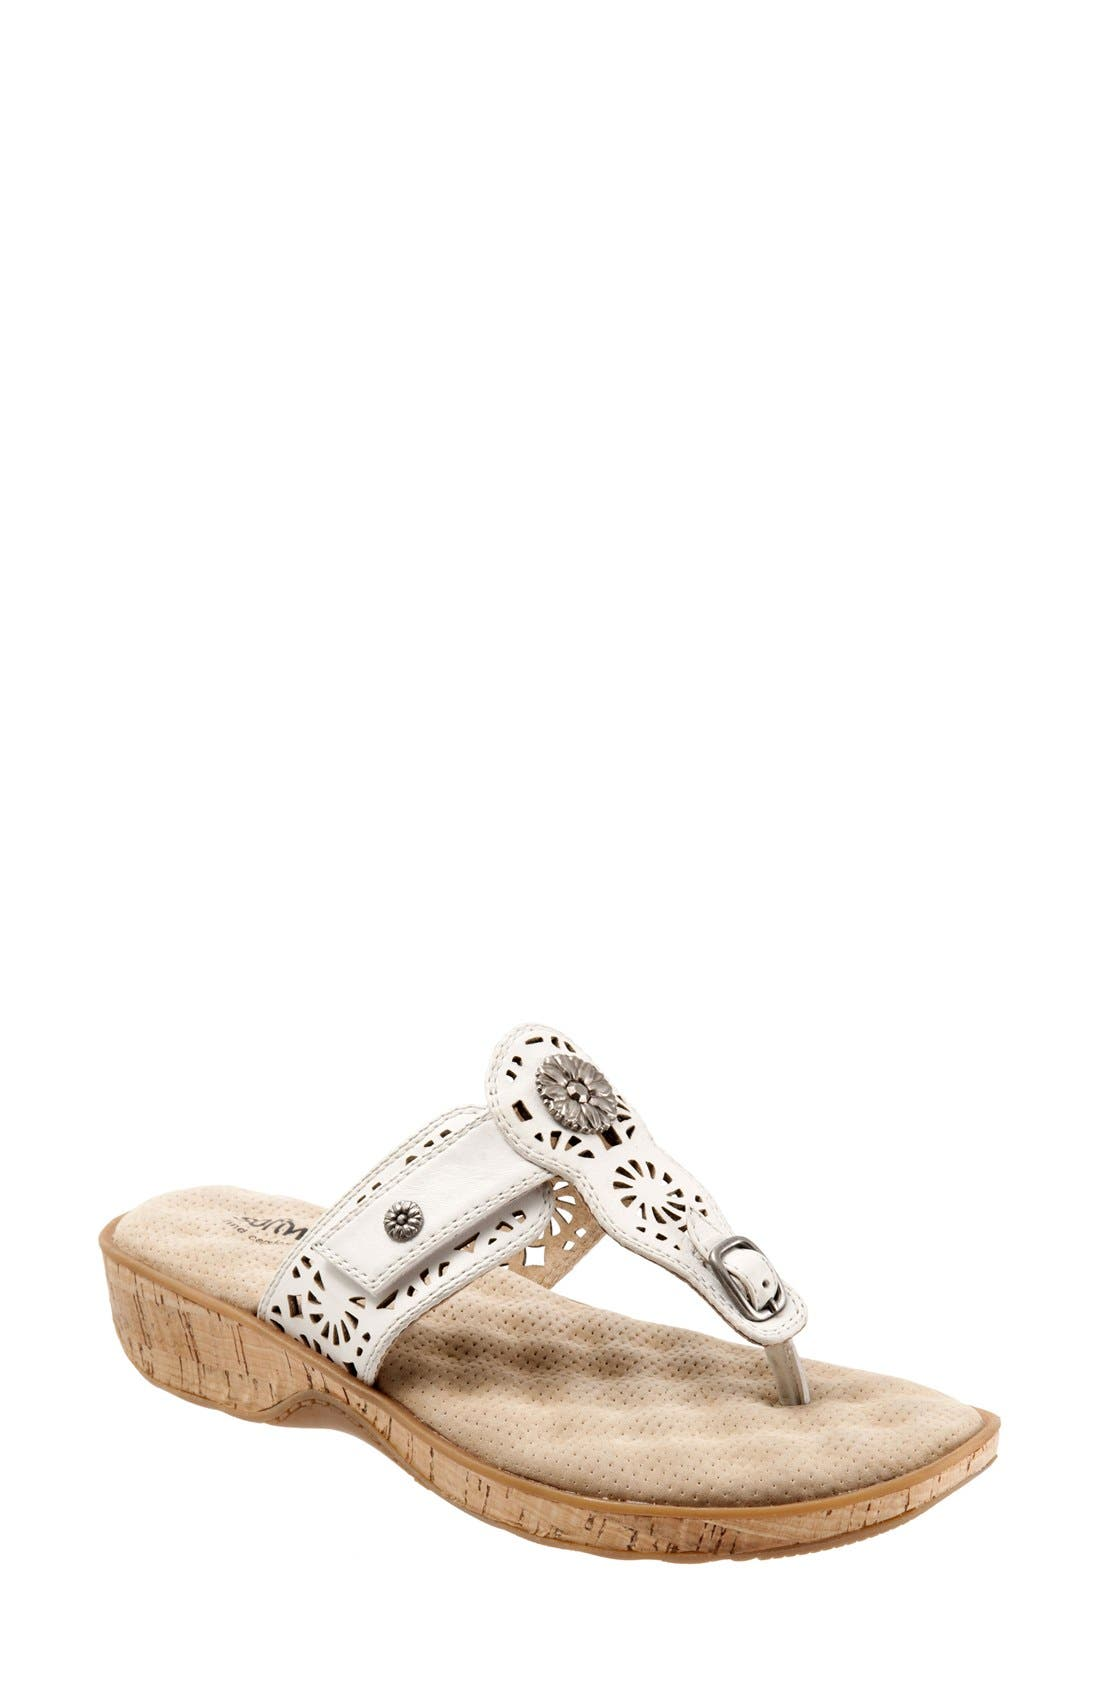 'Beaumont' Sandal,                             Main thumbnail 1, color,                             Off White Leather